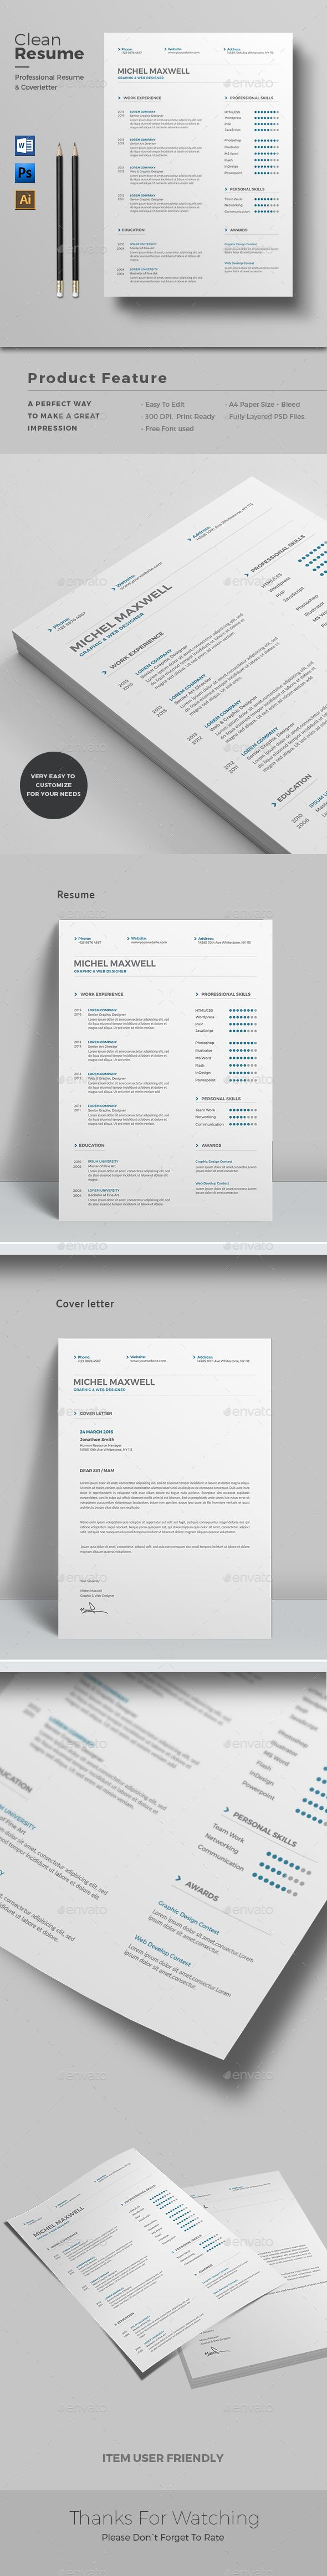 #Resume - Resumes #Stationery Download here: https://graphicriver.net/item/resume/15236929?ref=alena994